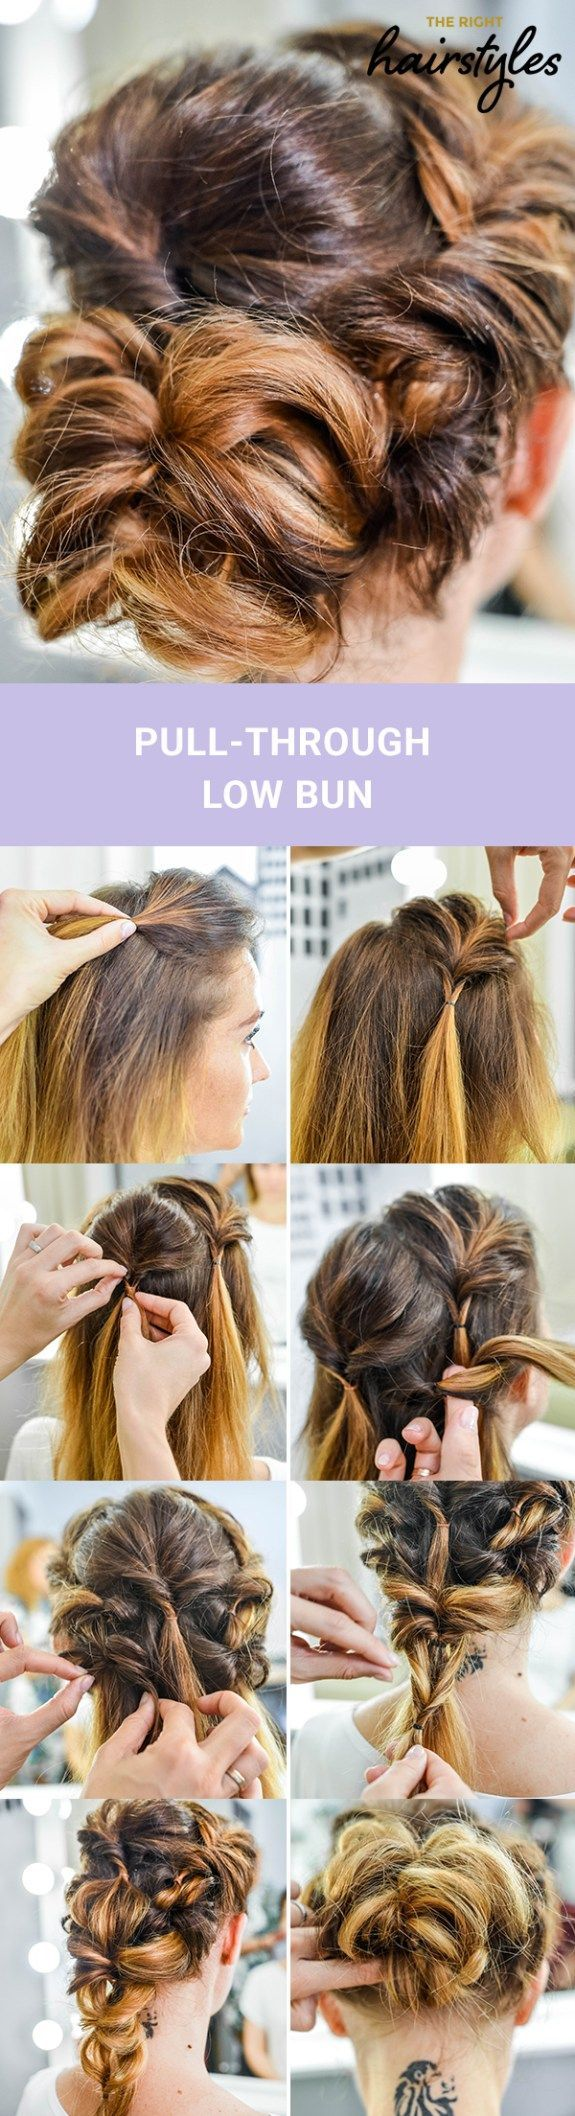 10+ Marvelous Girls Hairstyles For Long Hair Ideas